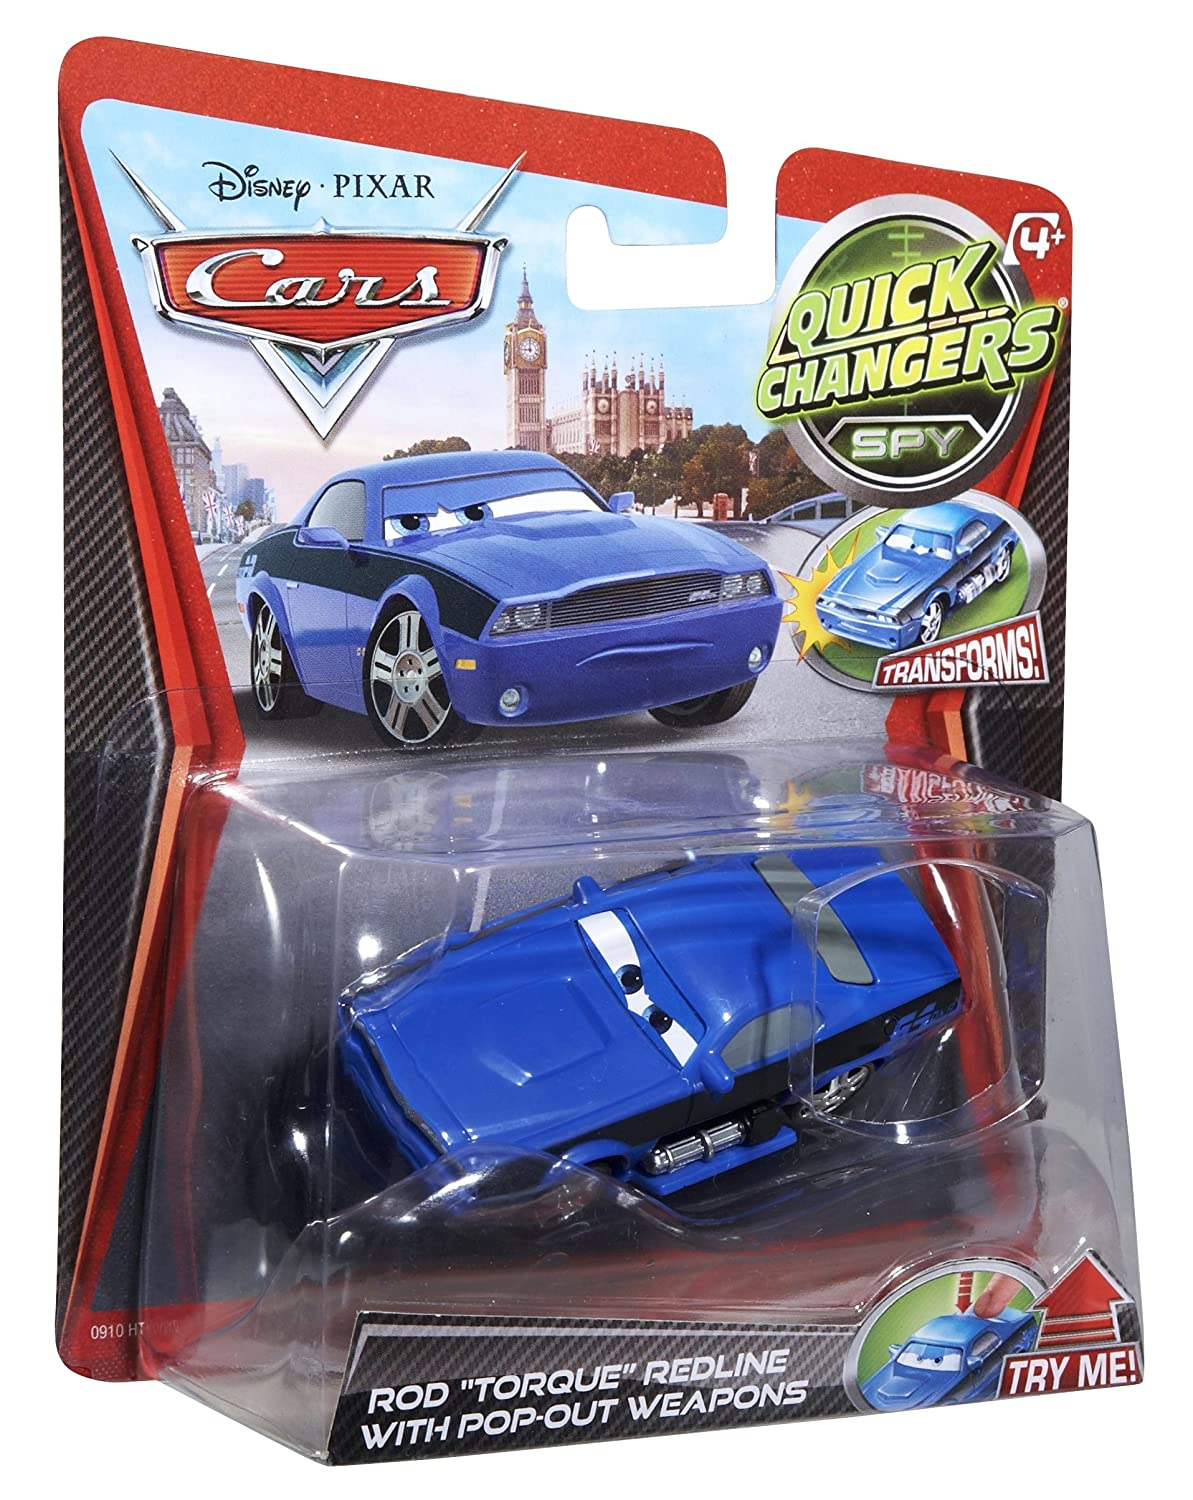 Amazon Com Disney Pixar Cars  Quick Changers Rod Torque Redline With Pop Out Weaons Toys Games